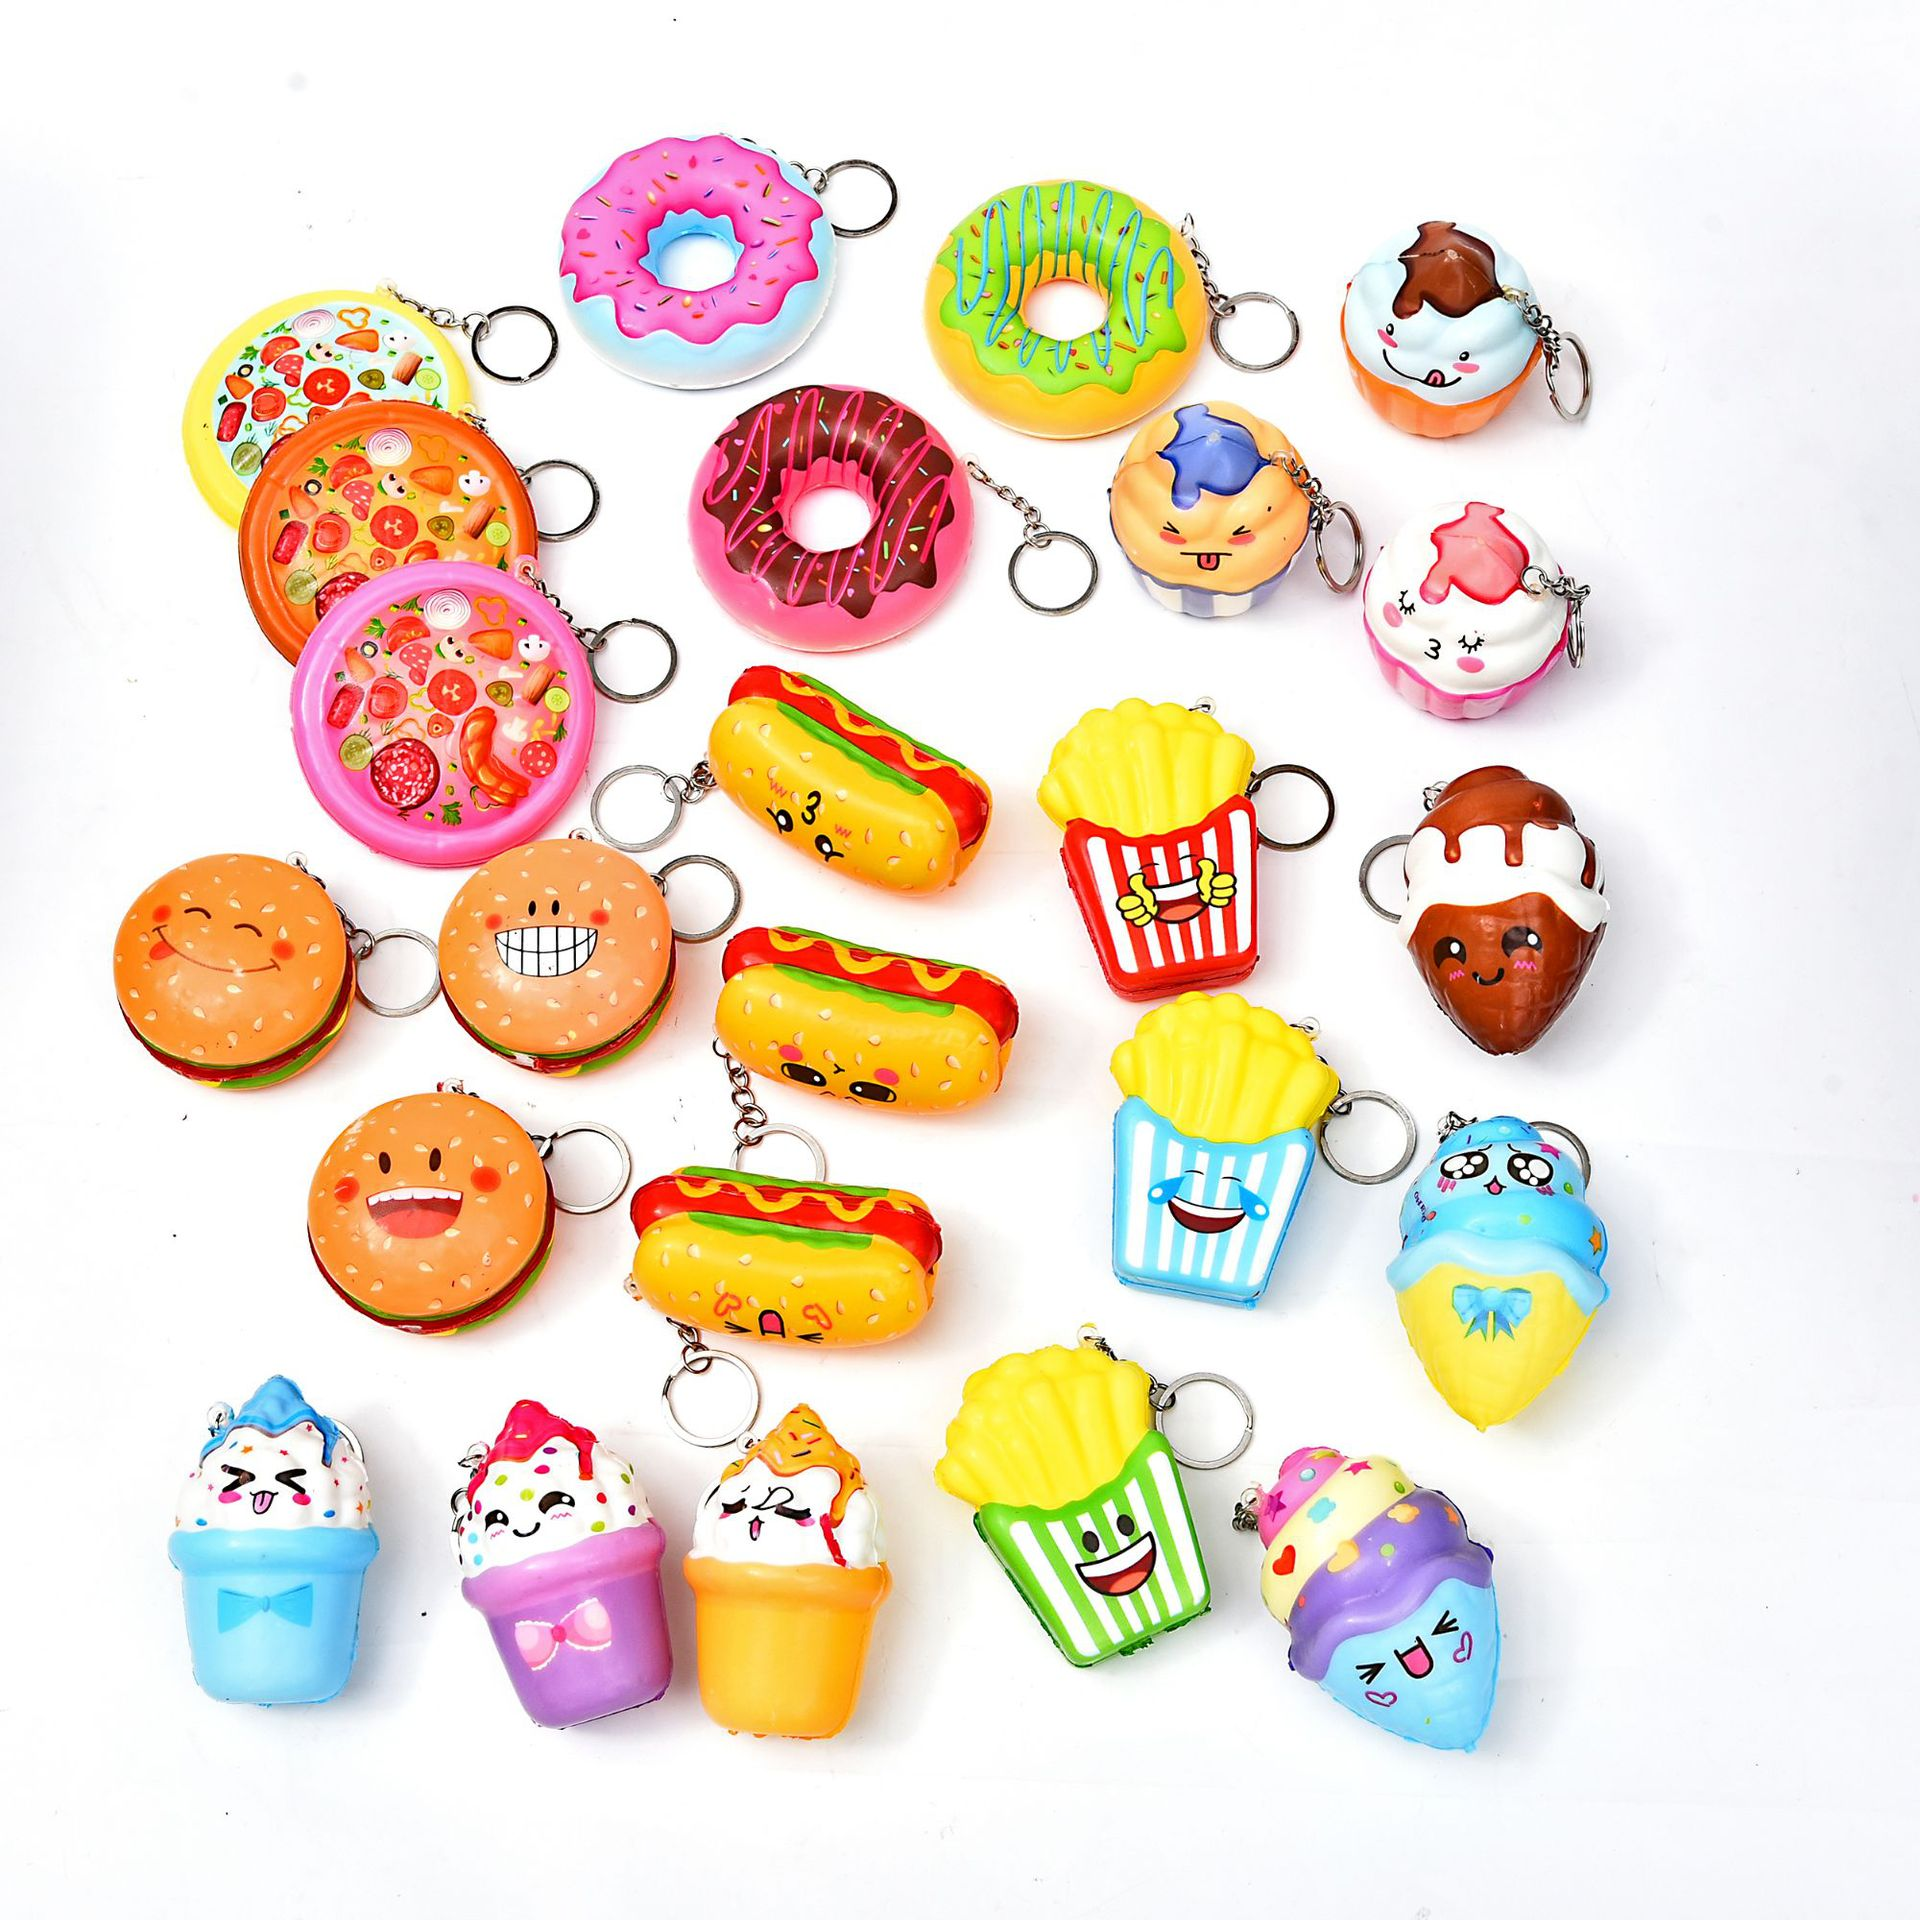 Kawaii Donut Squishy Keychain Ice Cream Slow Rising Cream Squishies Stress Relief Toy Antistress Toy For Children Adults Fidget